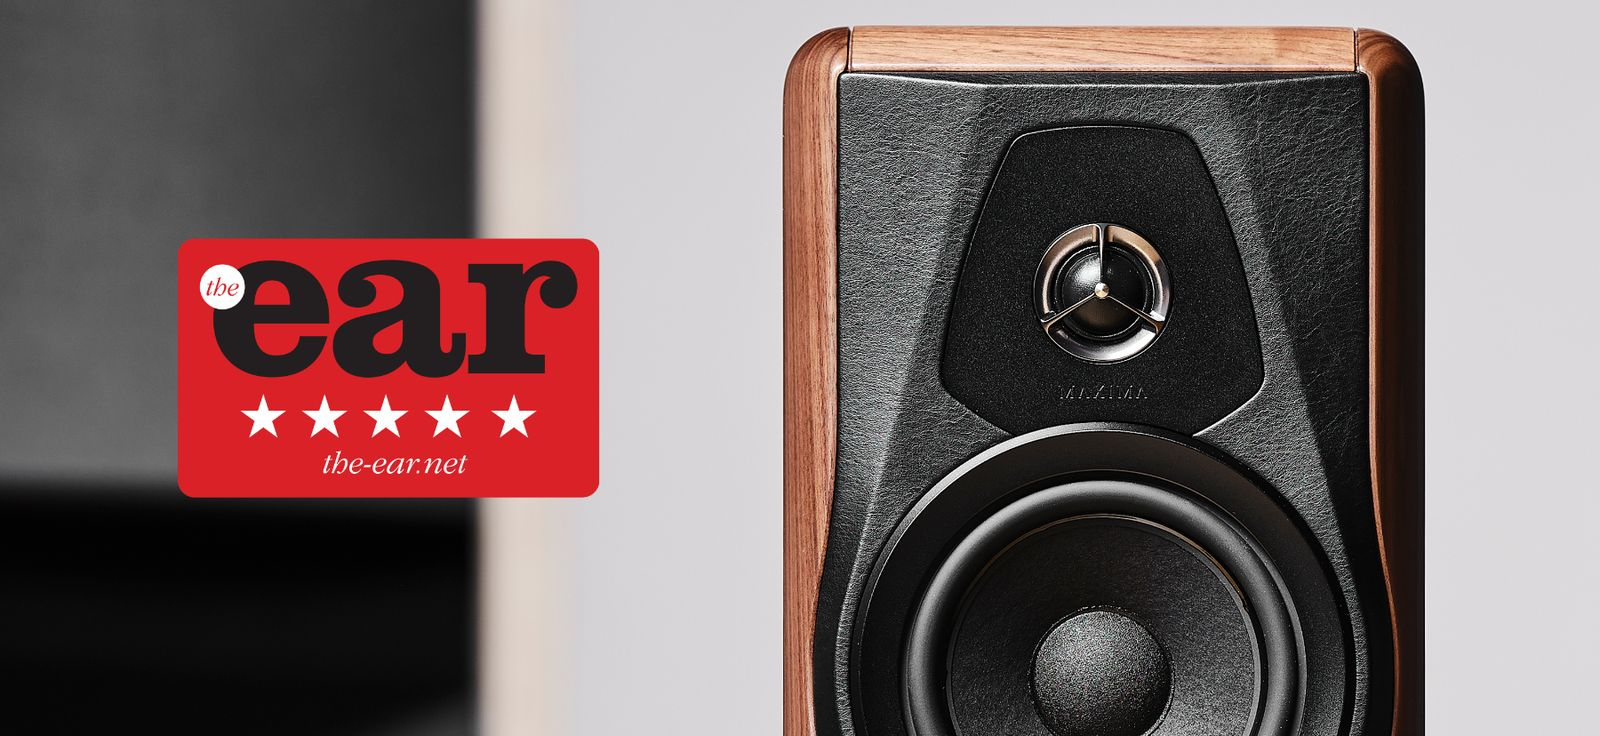 Sonus faber's Maxima Amator speaker gets a 5-star review from 'the ear'